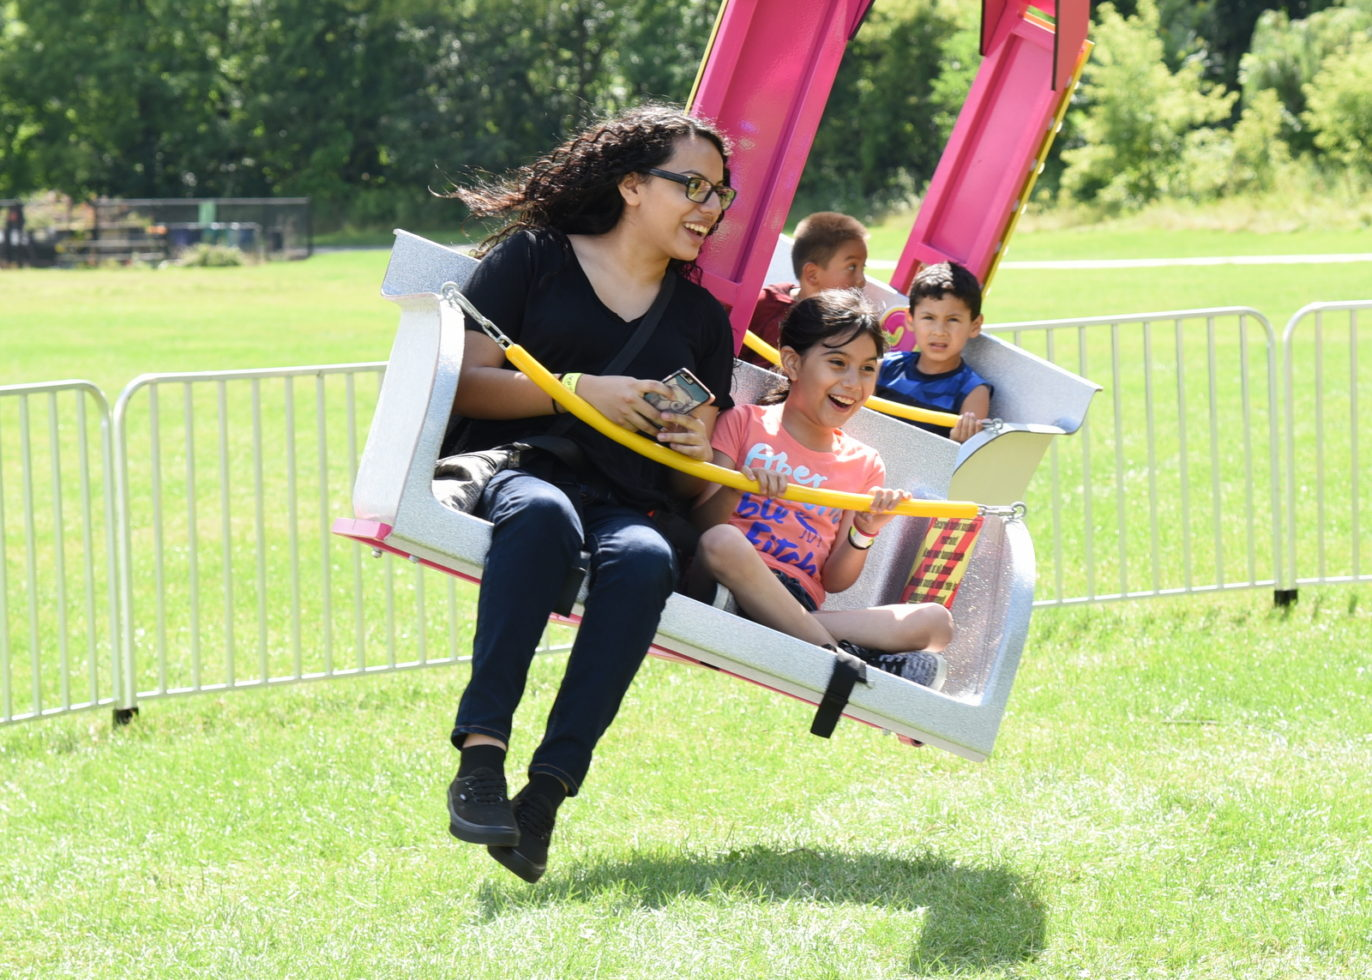 Adult and child on swing